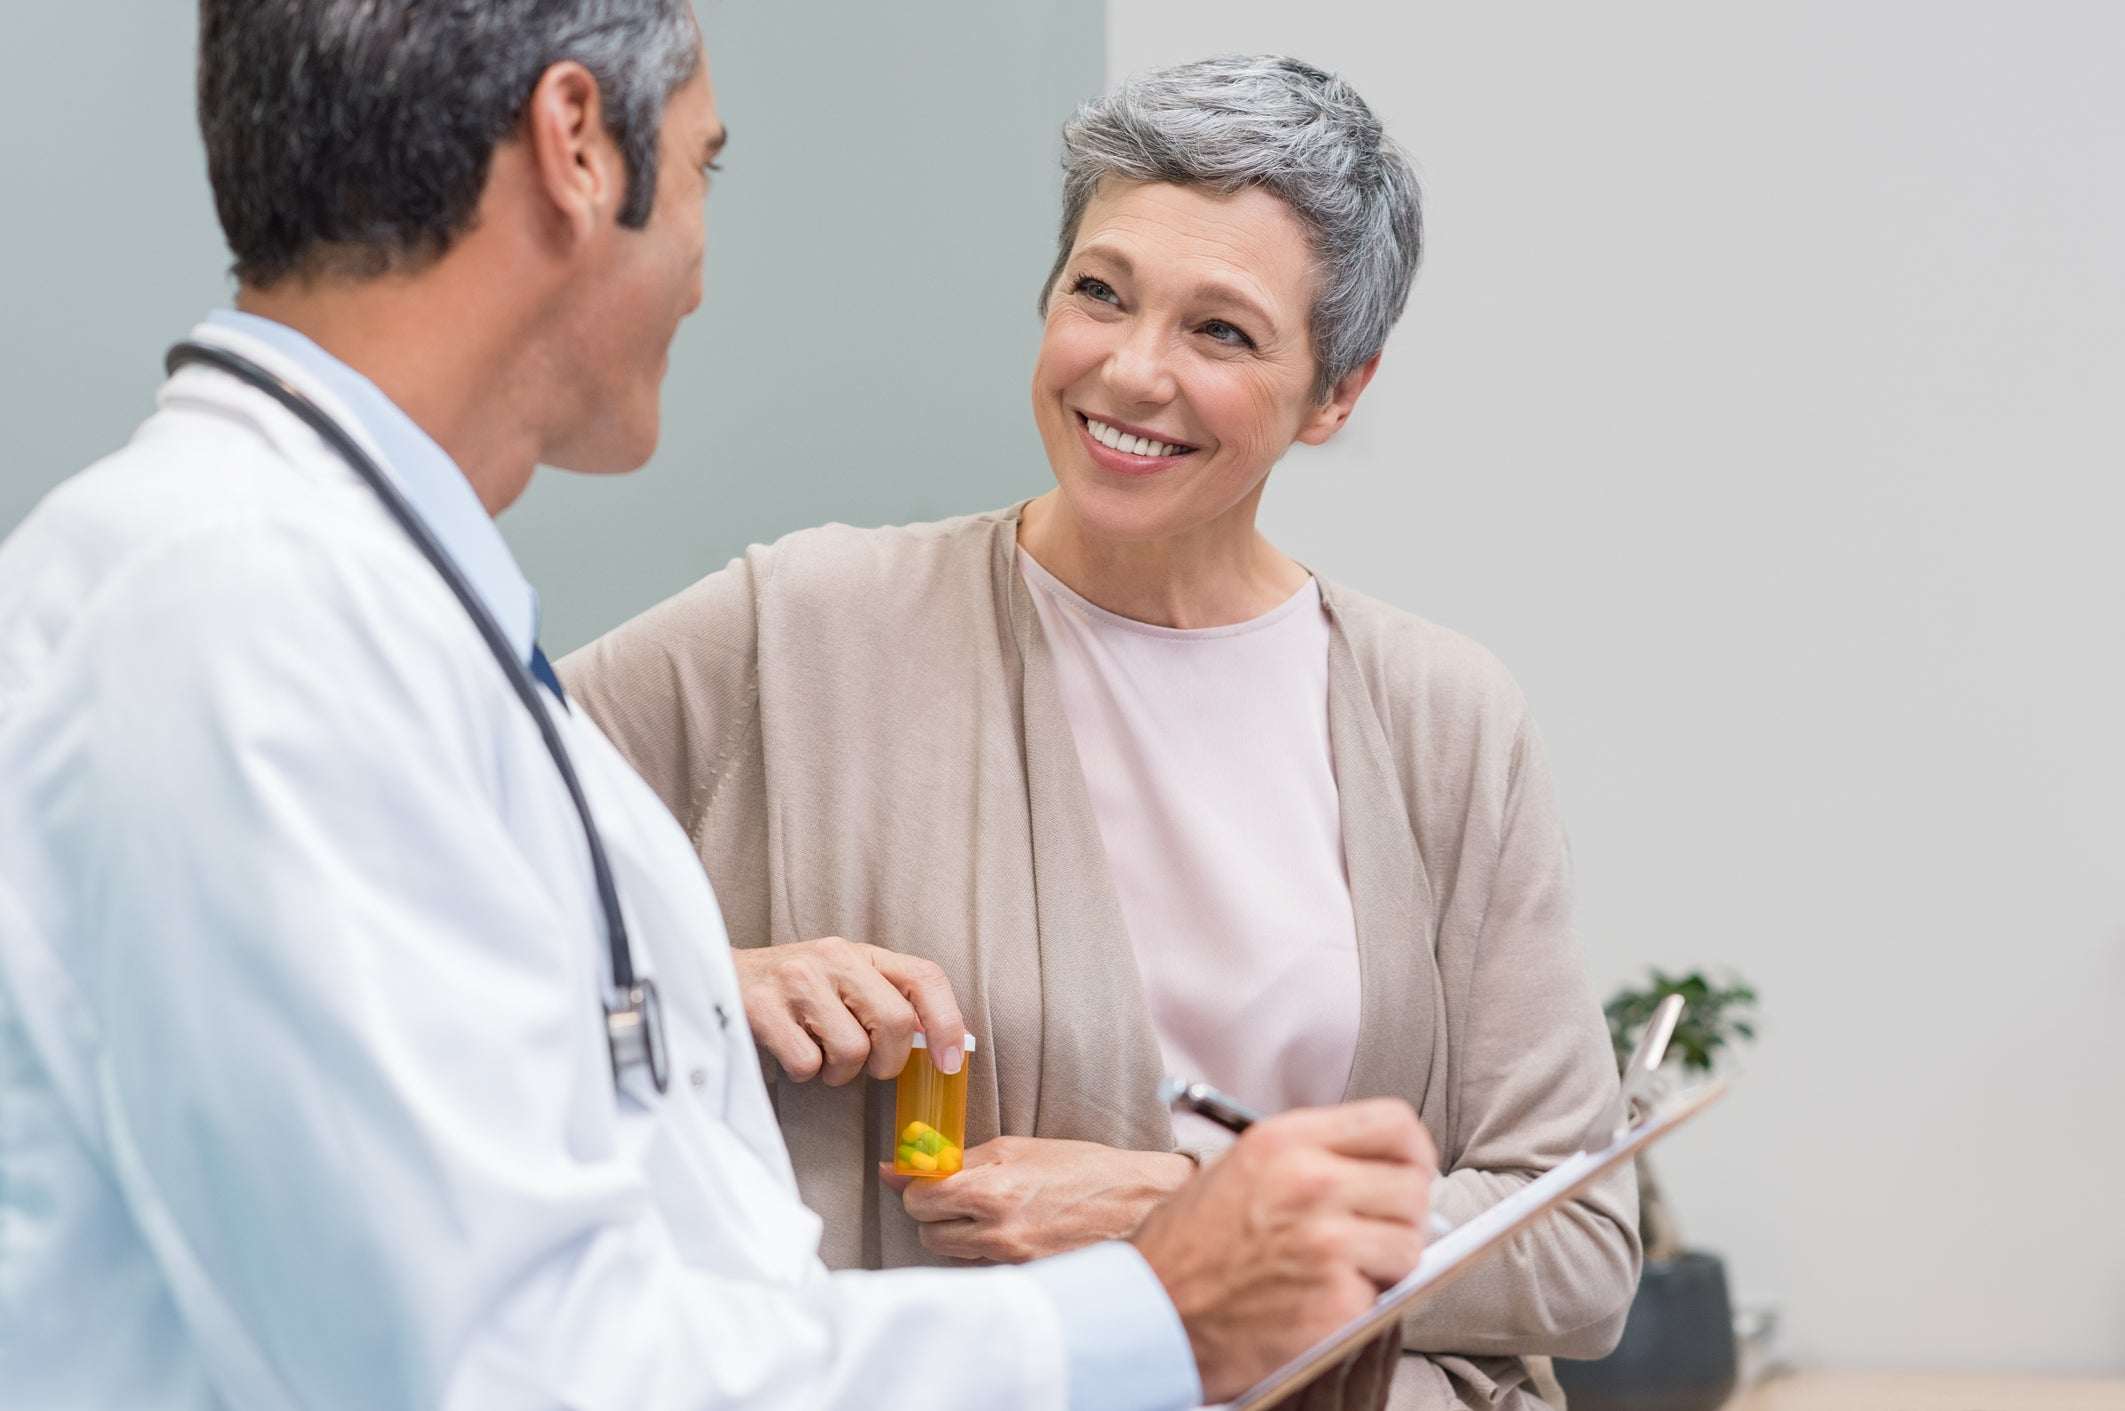 Can I Have Medicare in Conjunction With Employer-Sponsored Health Insurance? | The Motley Fool